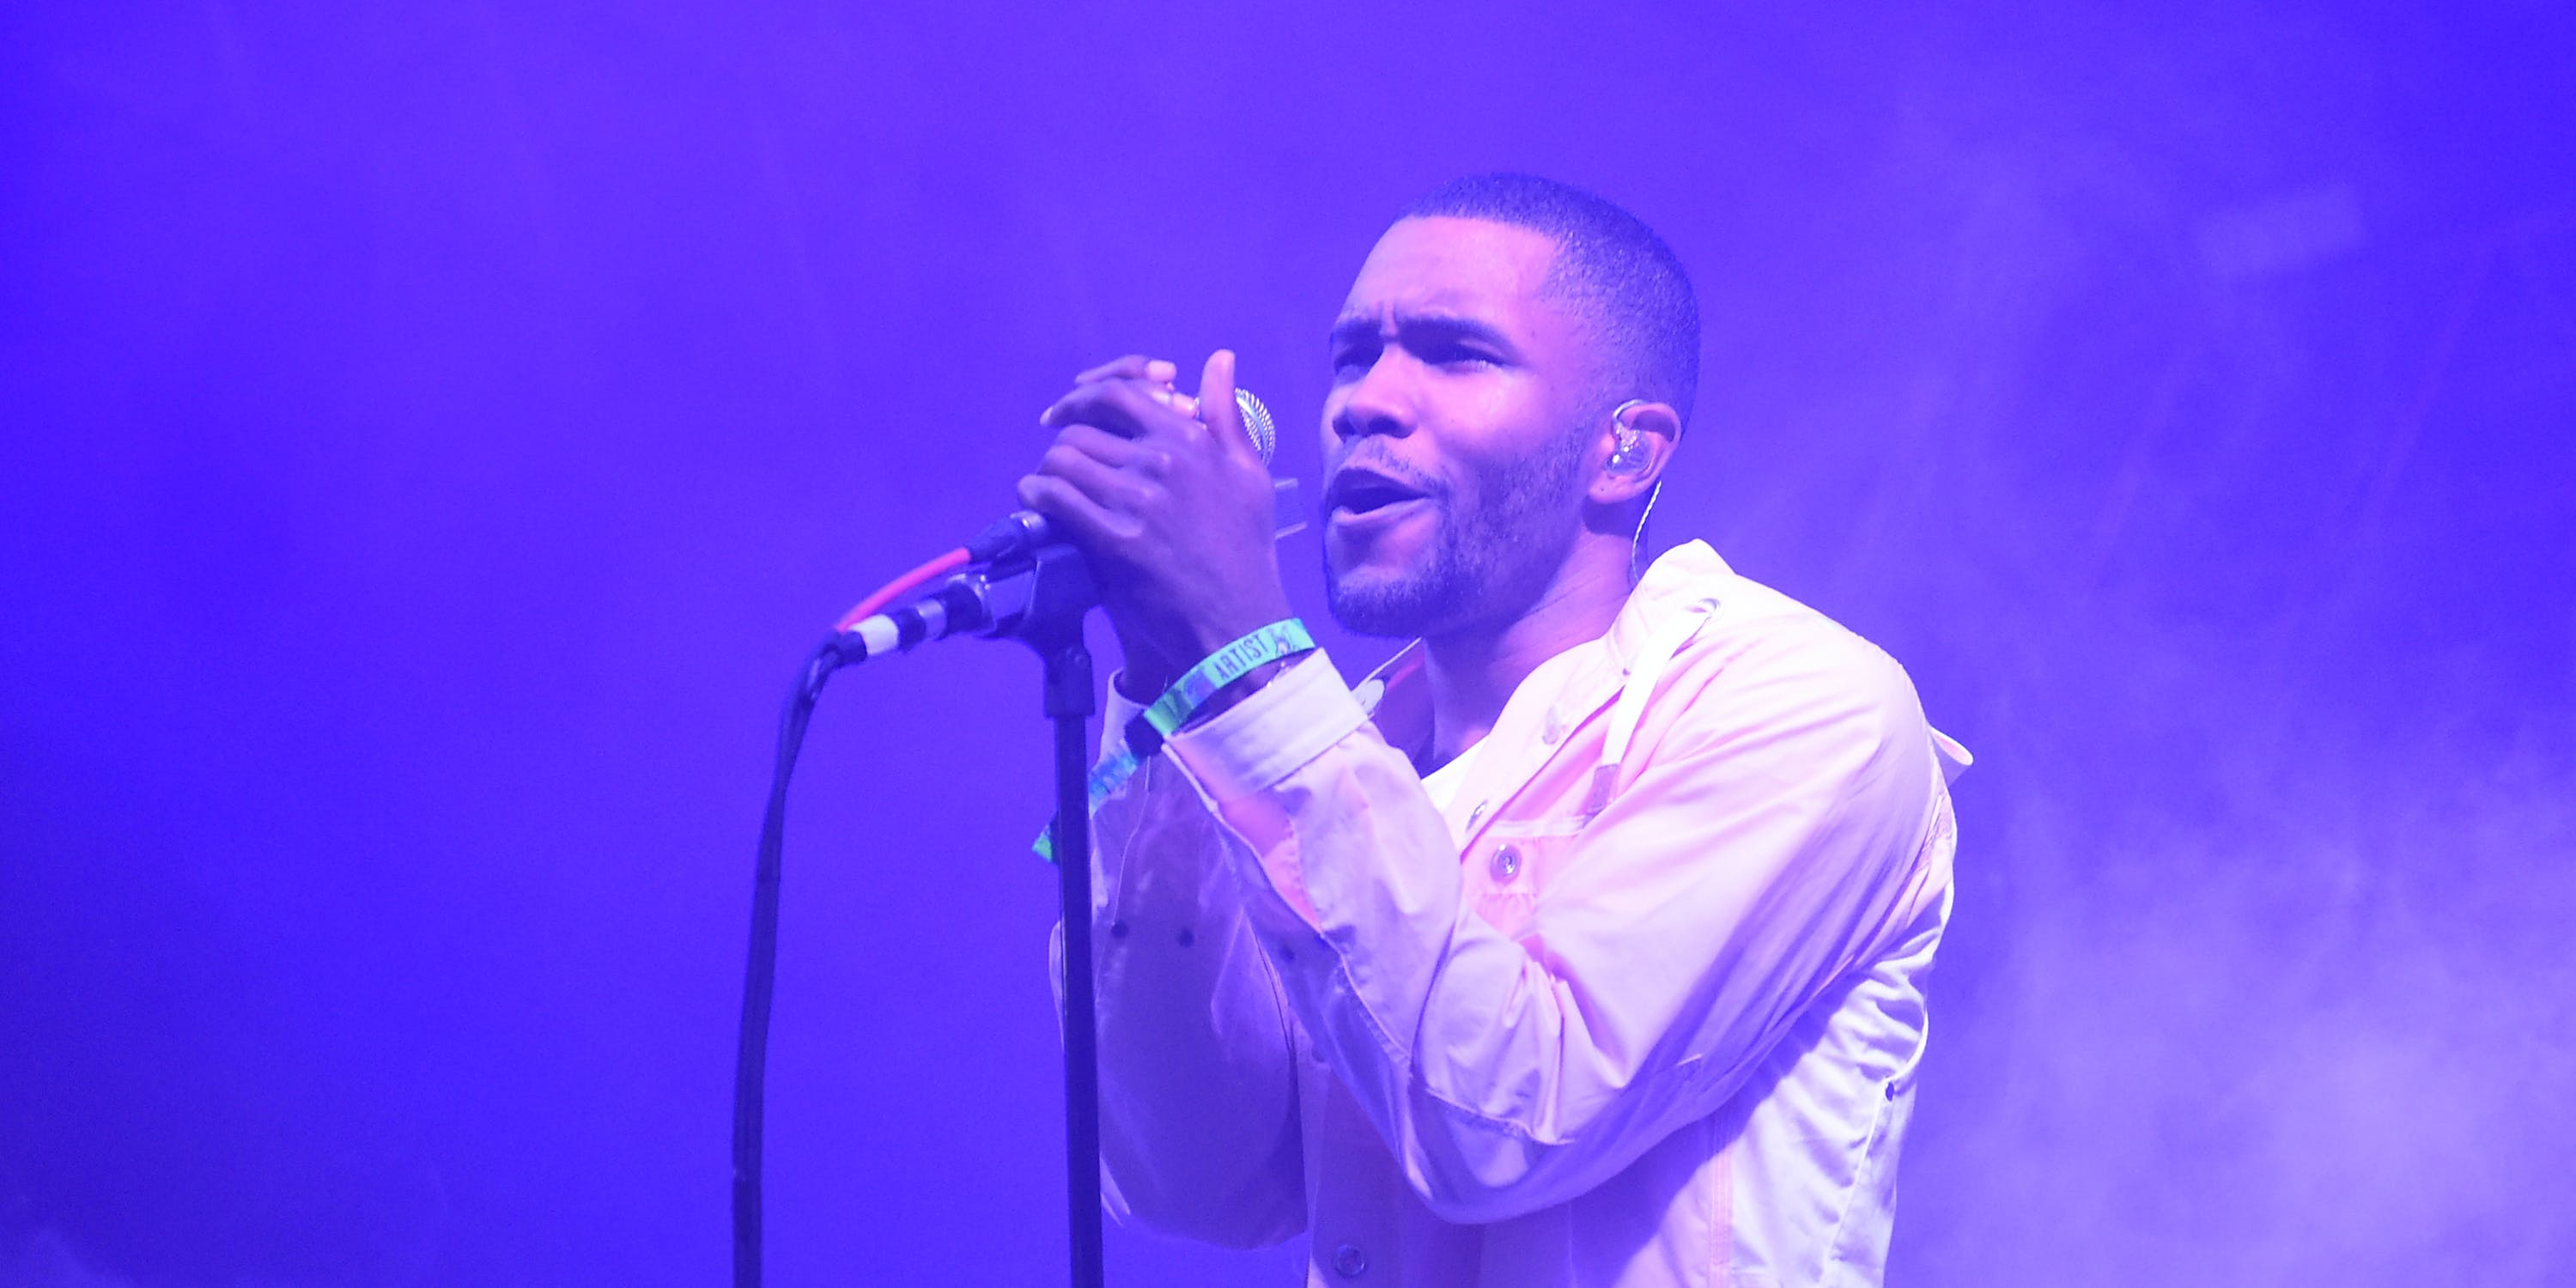 MANCHESTER, TN - JUNE 14:  Artist Frank Ocean performs during the 2014 Bonnaroo Music & Arts Festival on June 14, 2014 in Manchester, Tennessee.  (Photo by Jason Merritt/Getty Images)